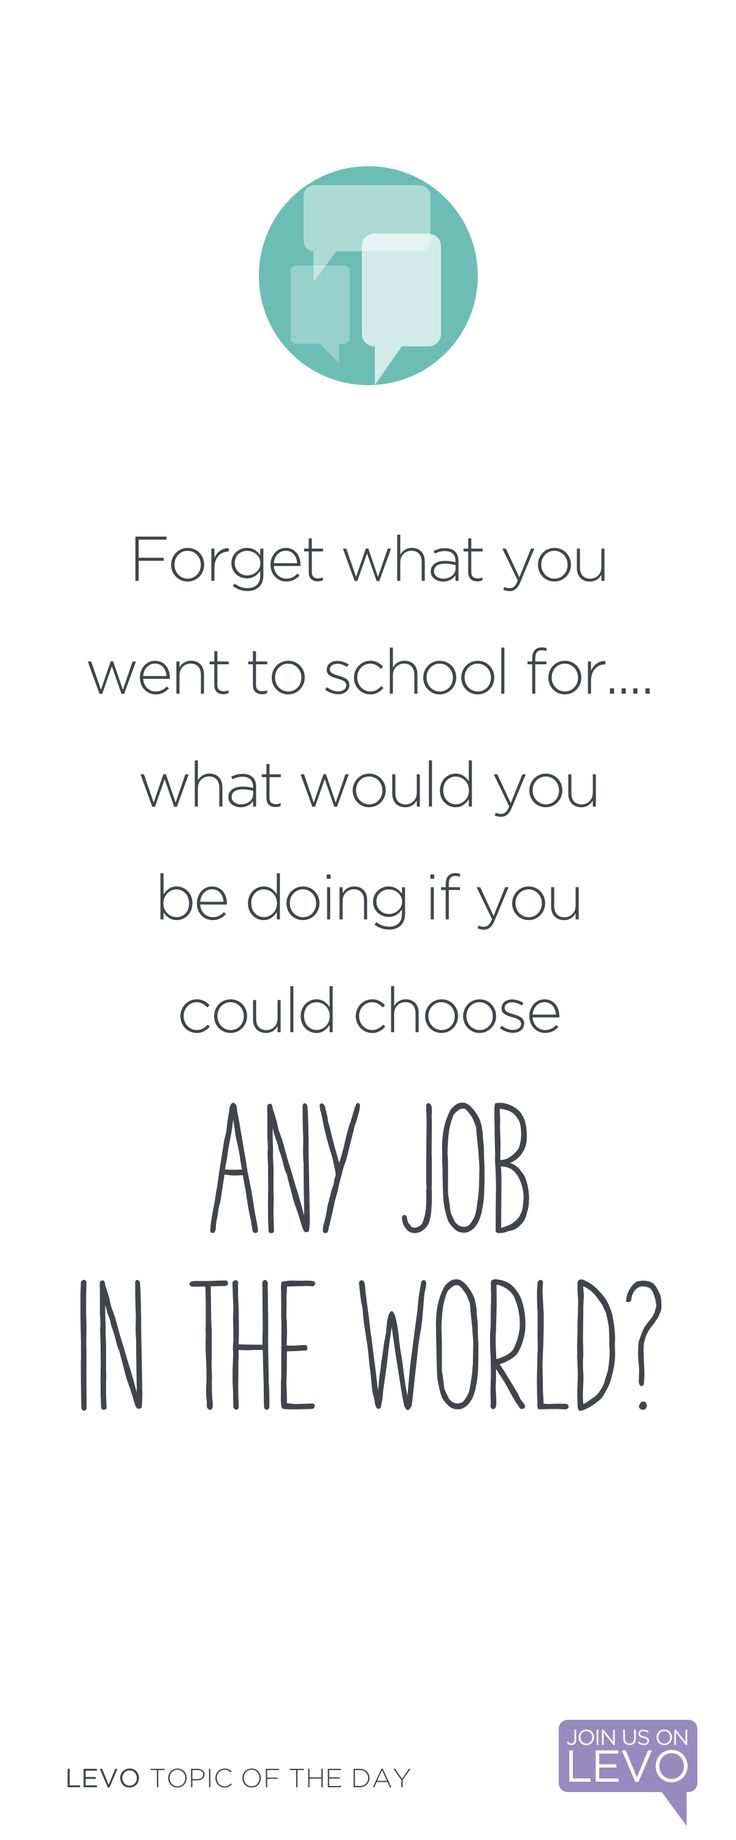 If you could have any job in the world, what would it be? No limits. https://www.levo.com/posts/forget-what-you-went-to-school-for-what-would-you-be-doing-if-you-could-choose-any-job-in-the-world